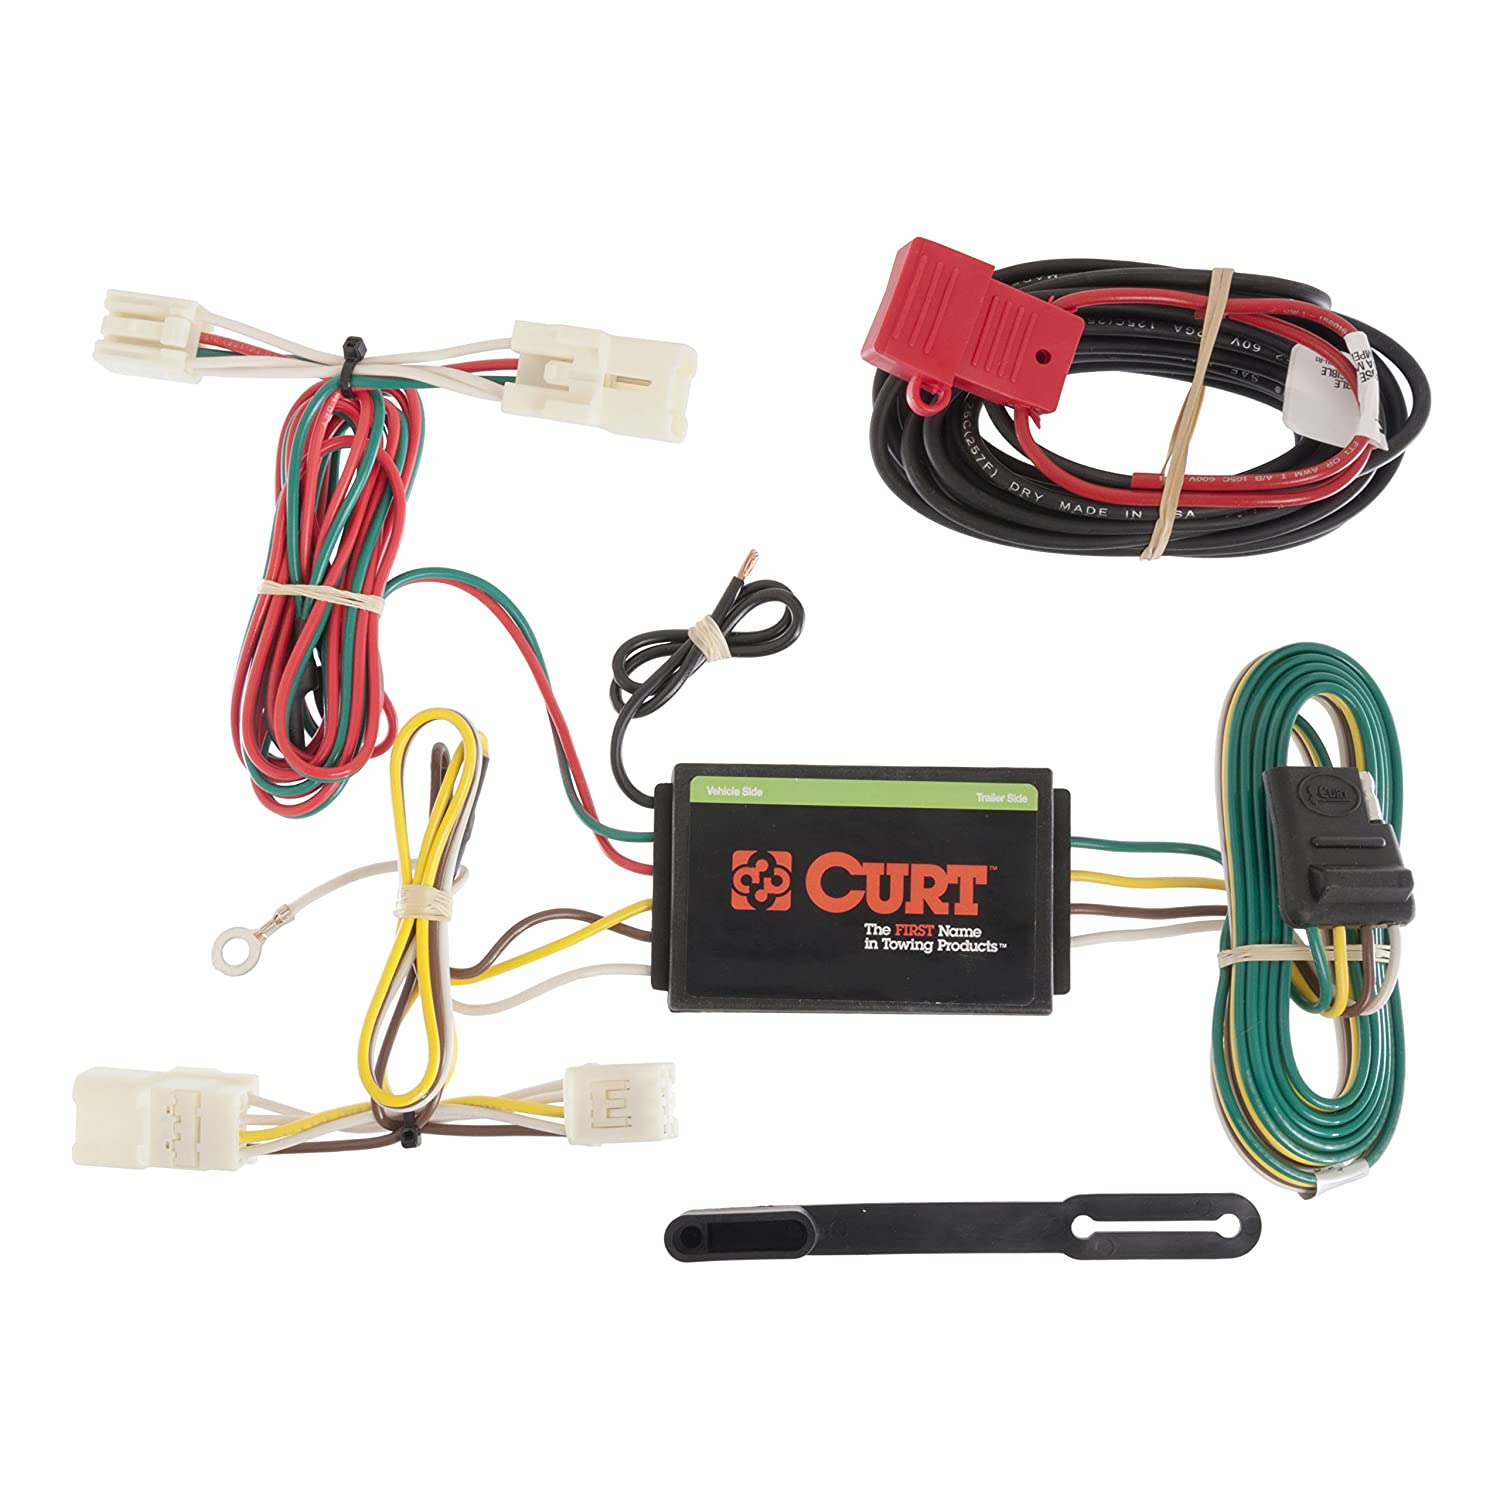 817l7jcQOtL._SL1500_ amazon com curt 56165 custom wiring harness automotive wiring harness for trailer hitch at alyssarenee.co